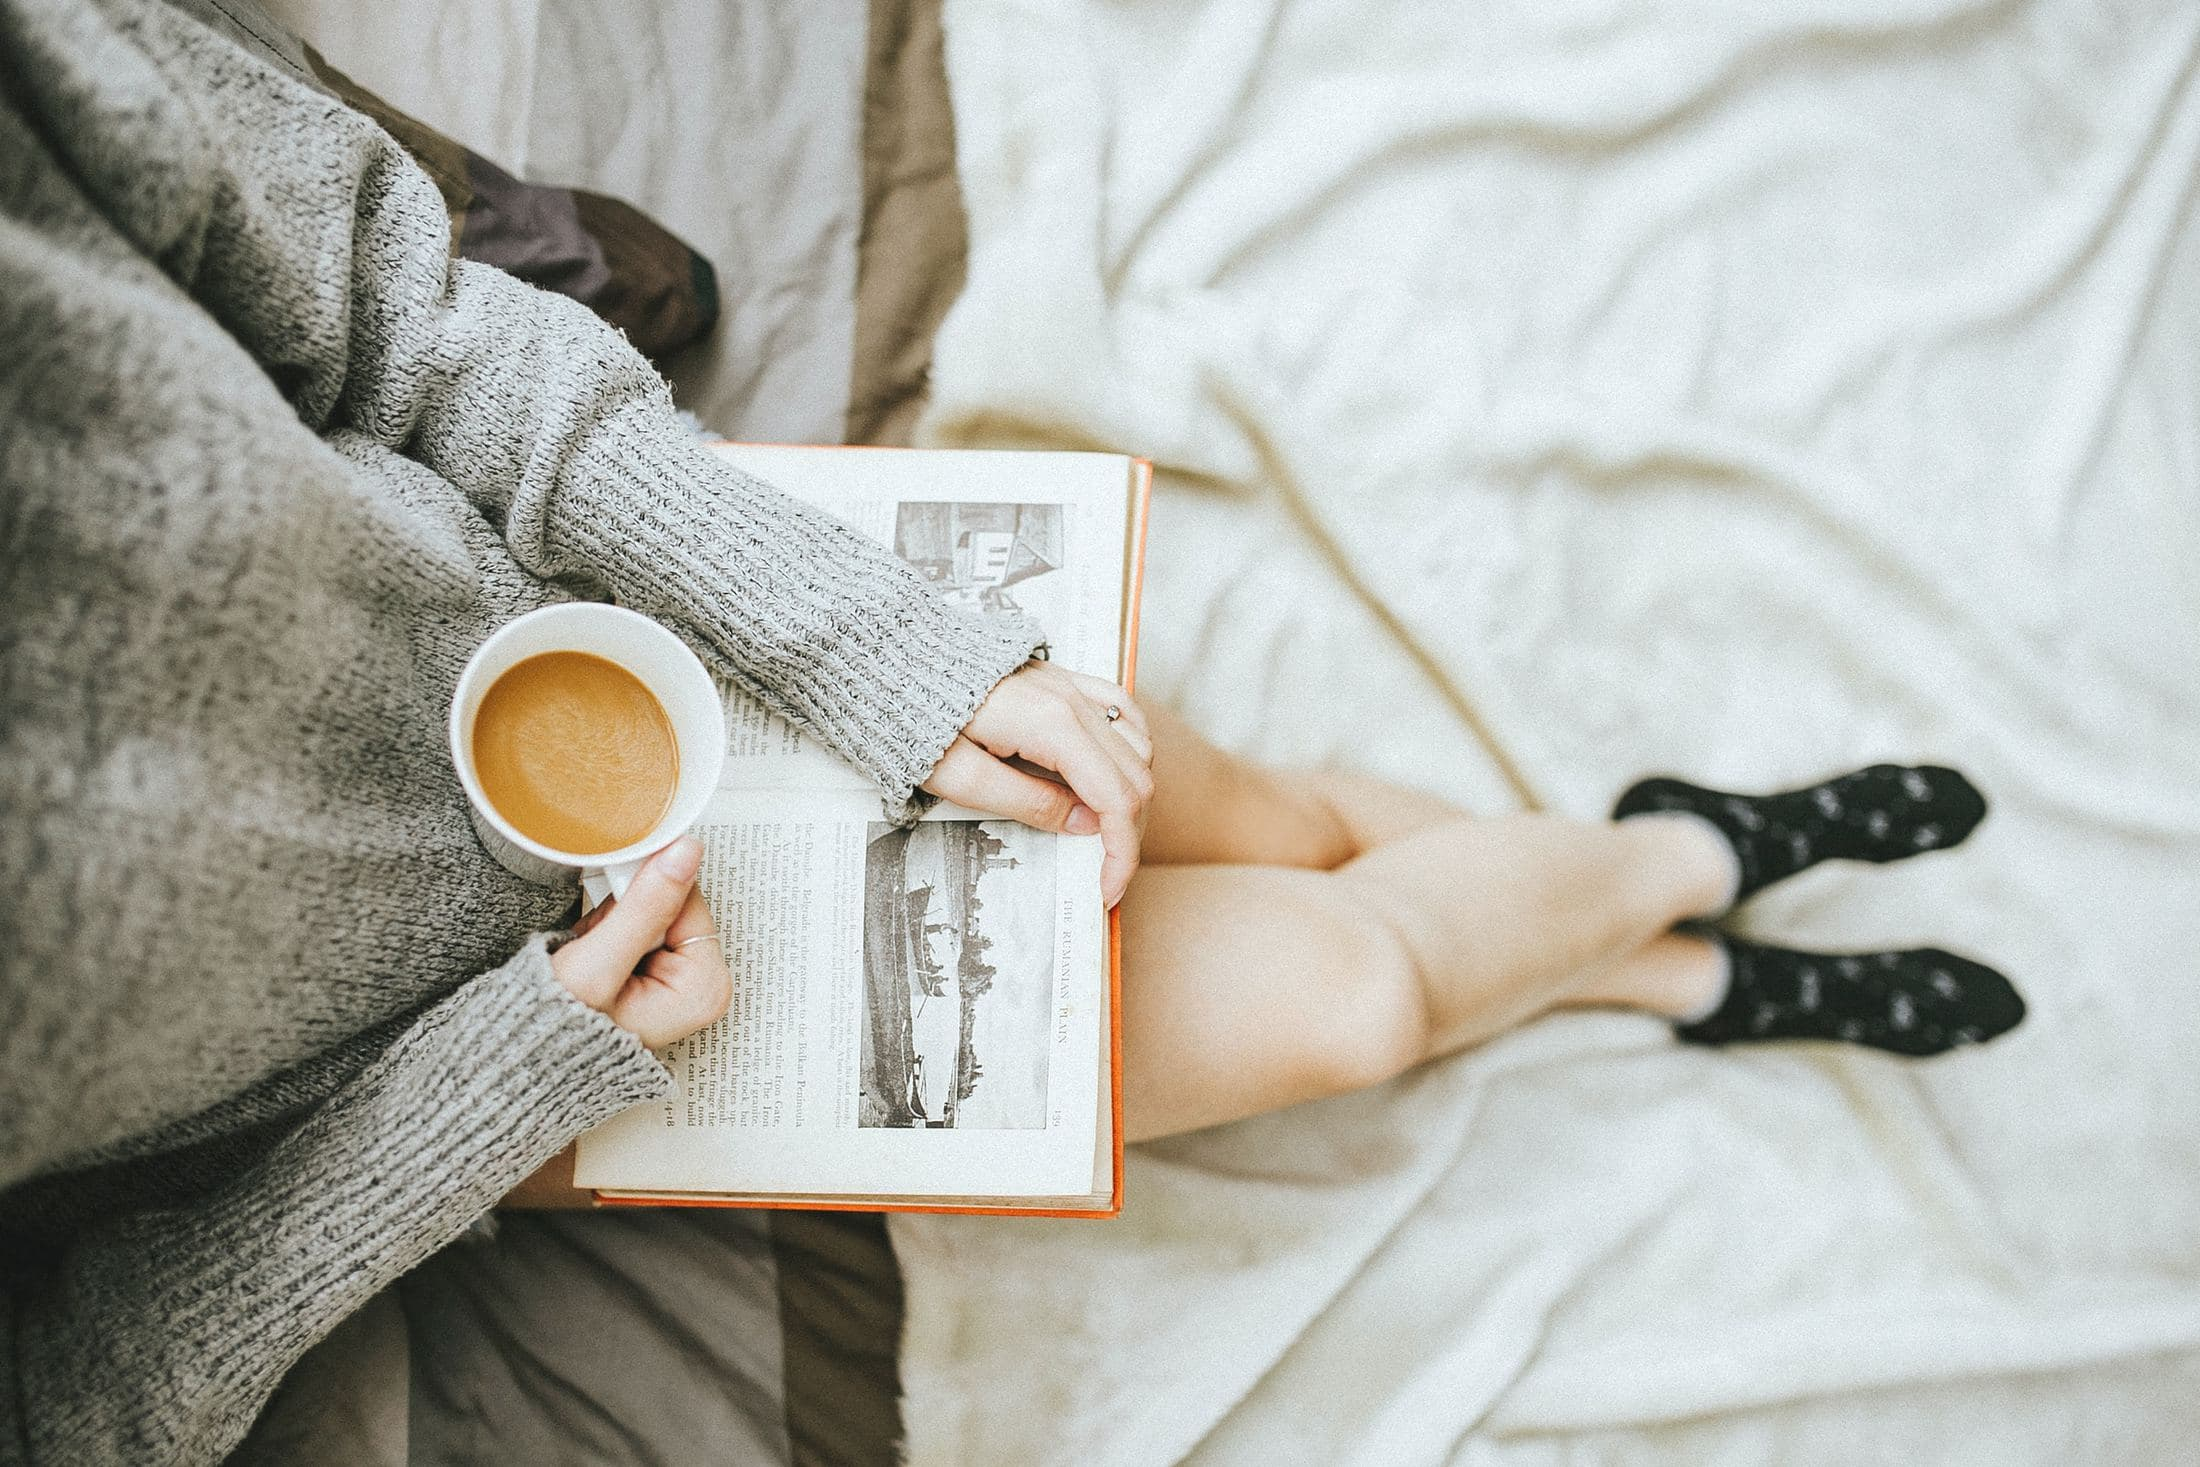 woman holding a cup of coffee at right hand and reading book on her lap while holding it open with her left hand in a well-lit room